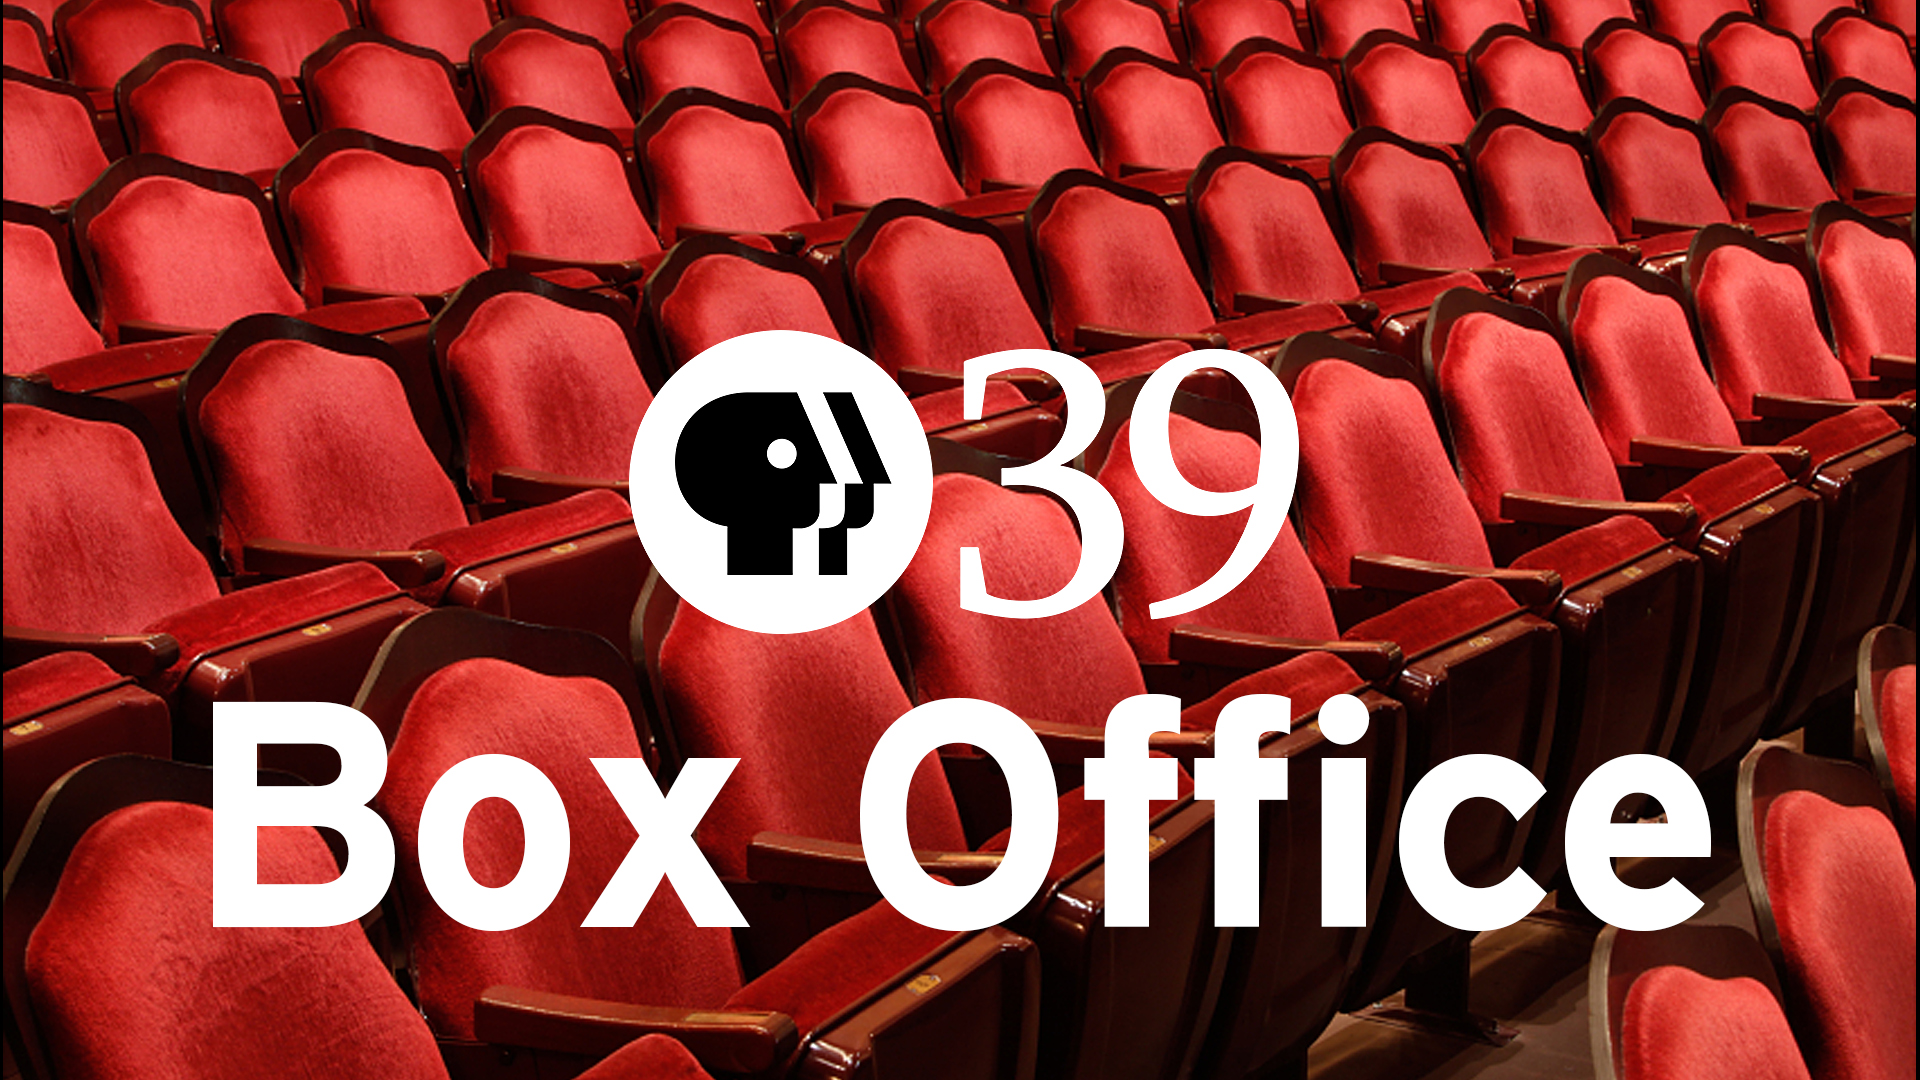 PBS39 Box Office